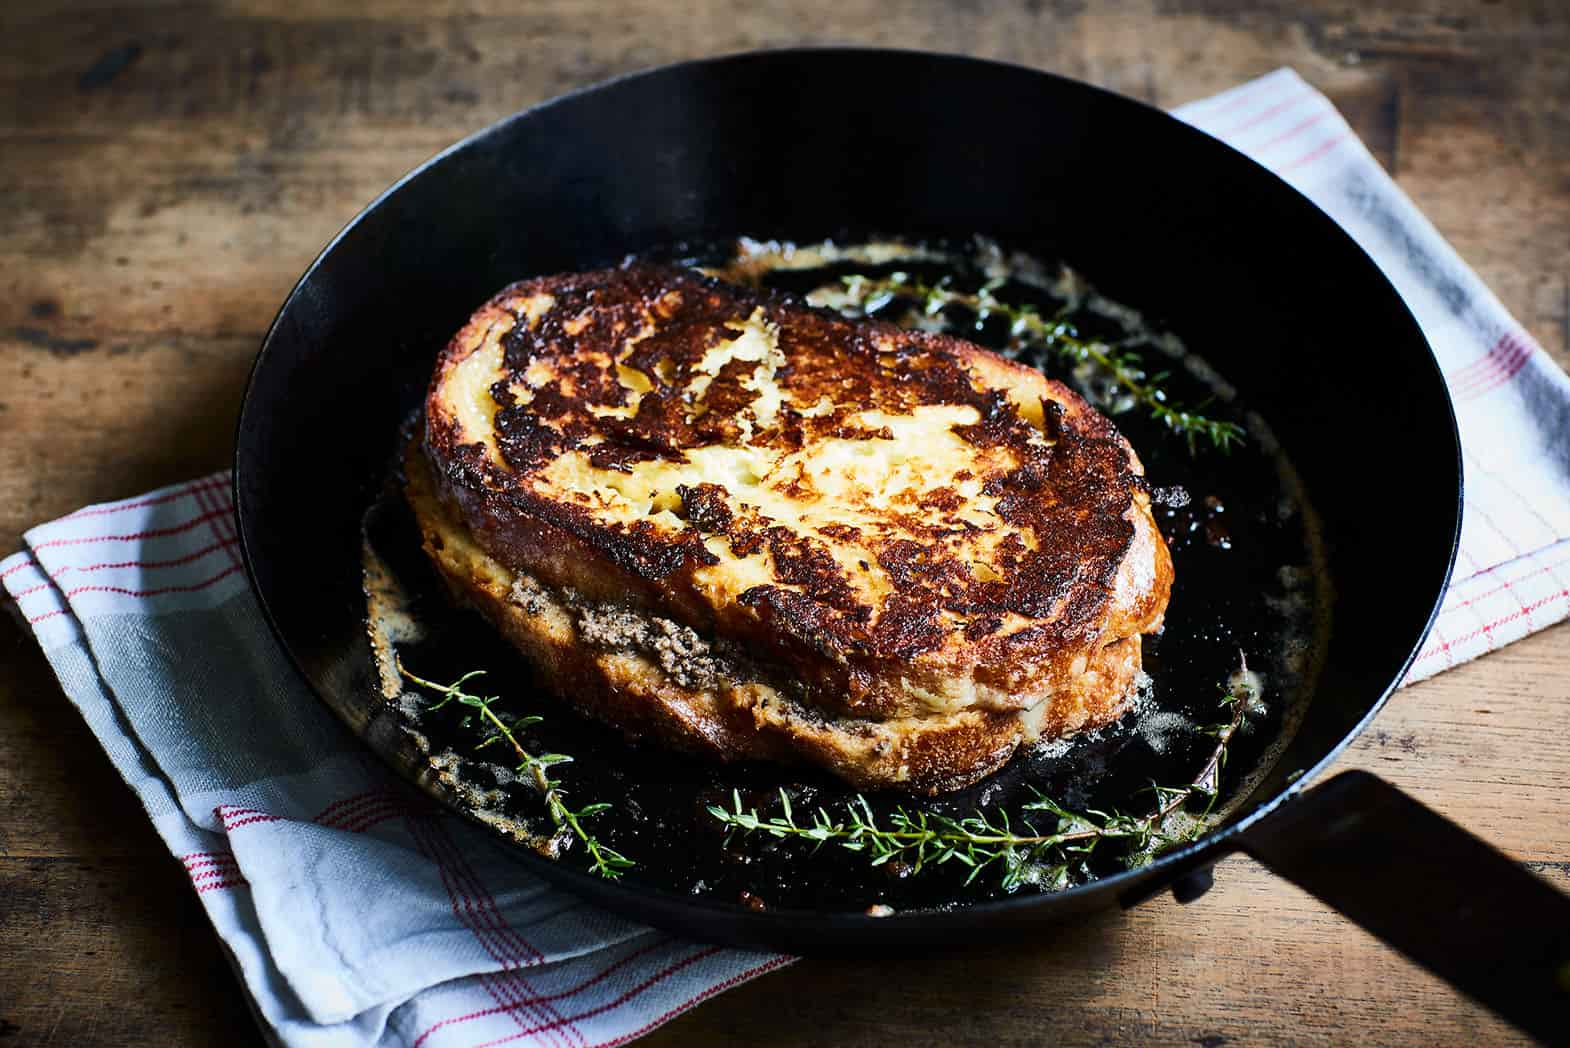 Truffled Pain Perdu Sandwich